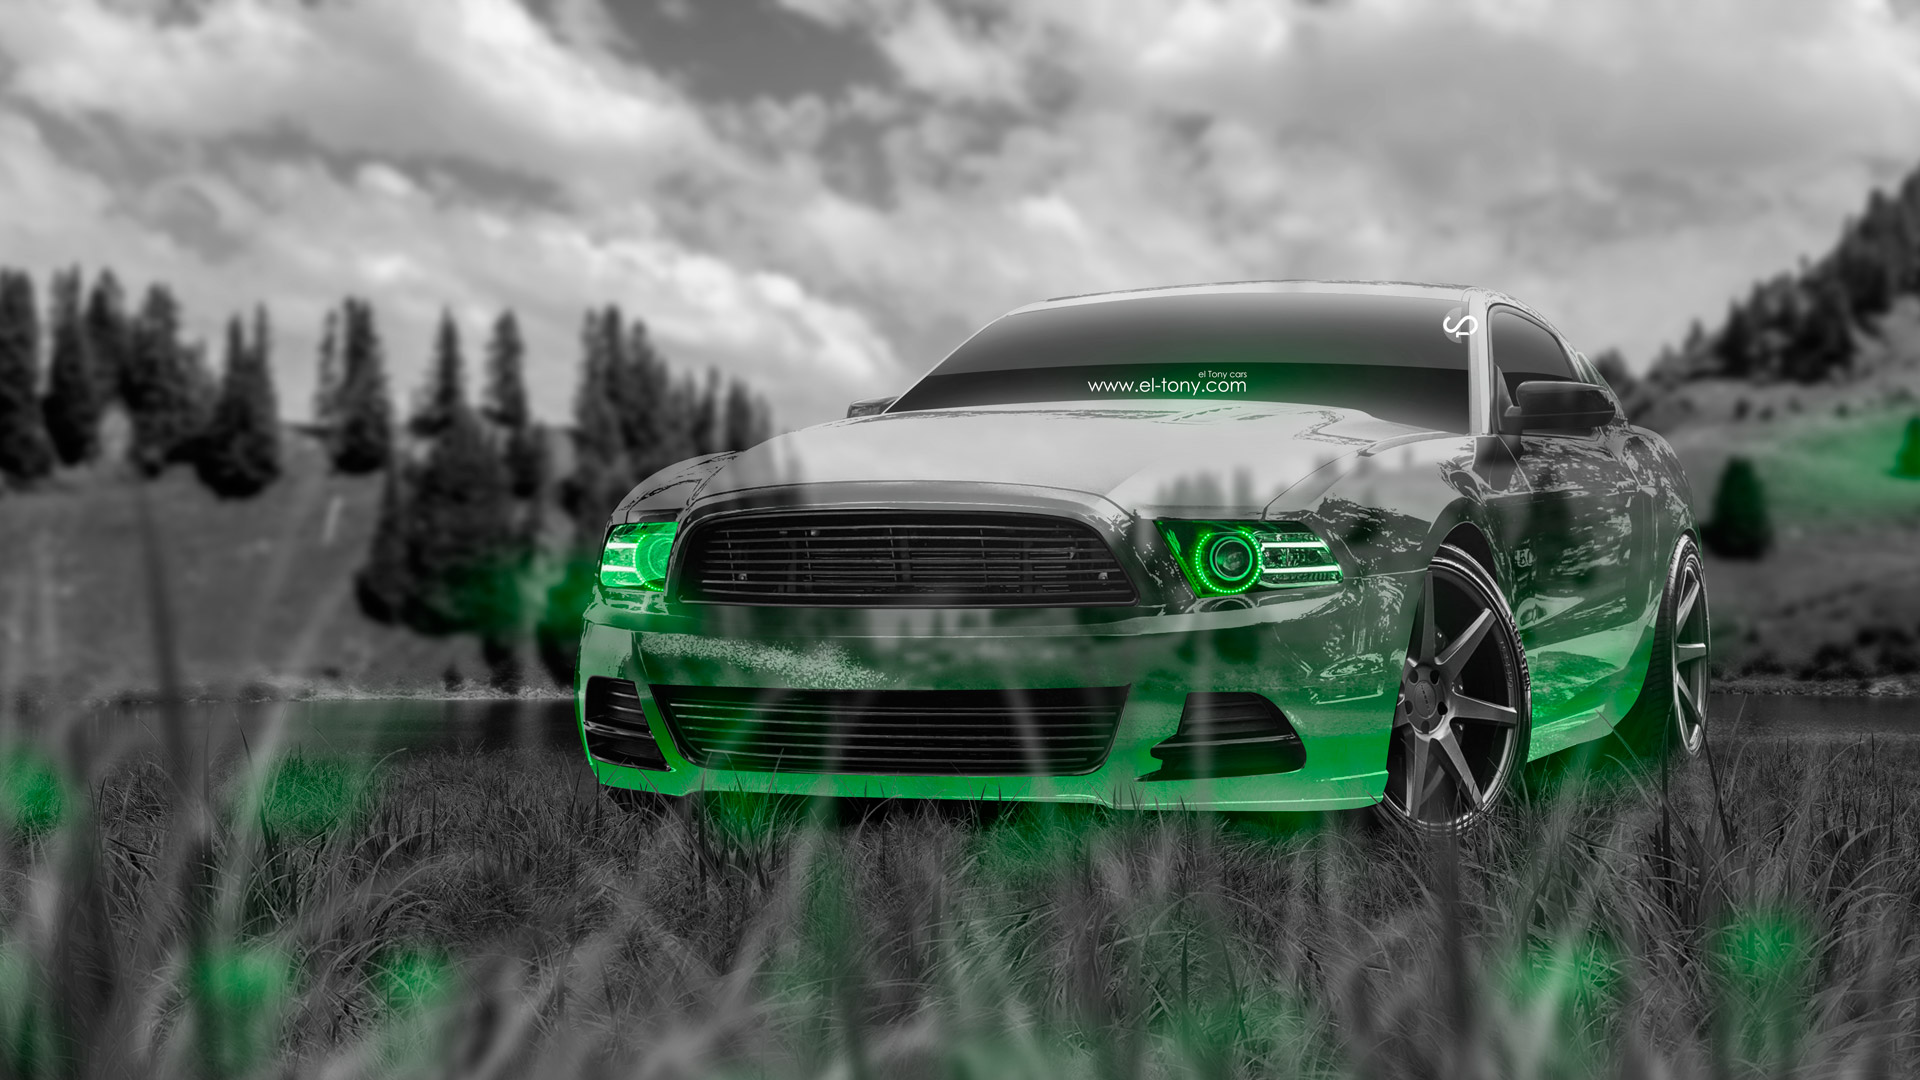 Ford Mustang Gt Muscle Crystal Nature Car 2014 El Tony